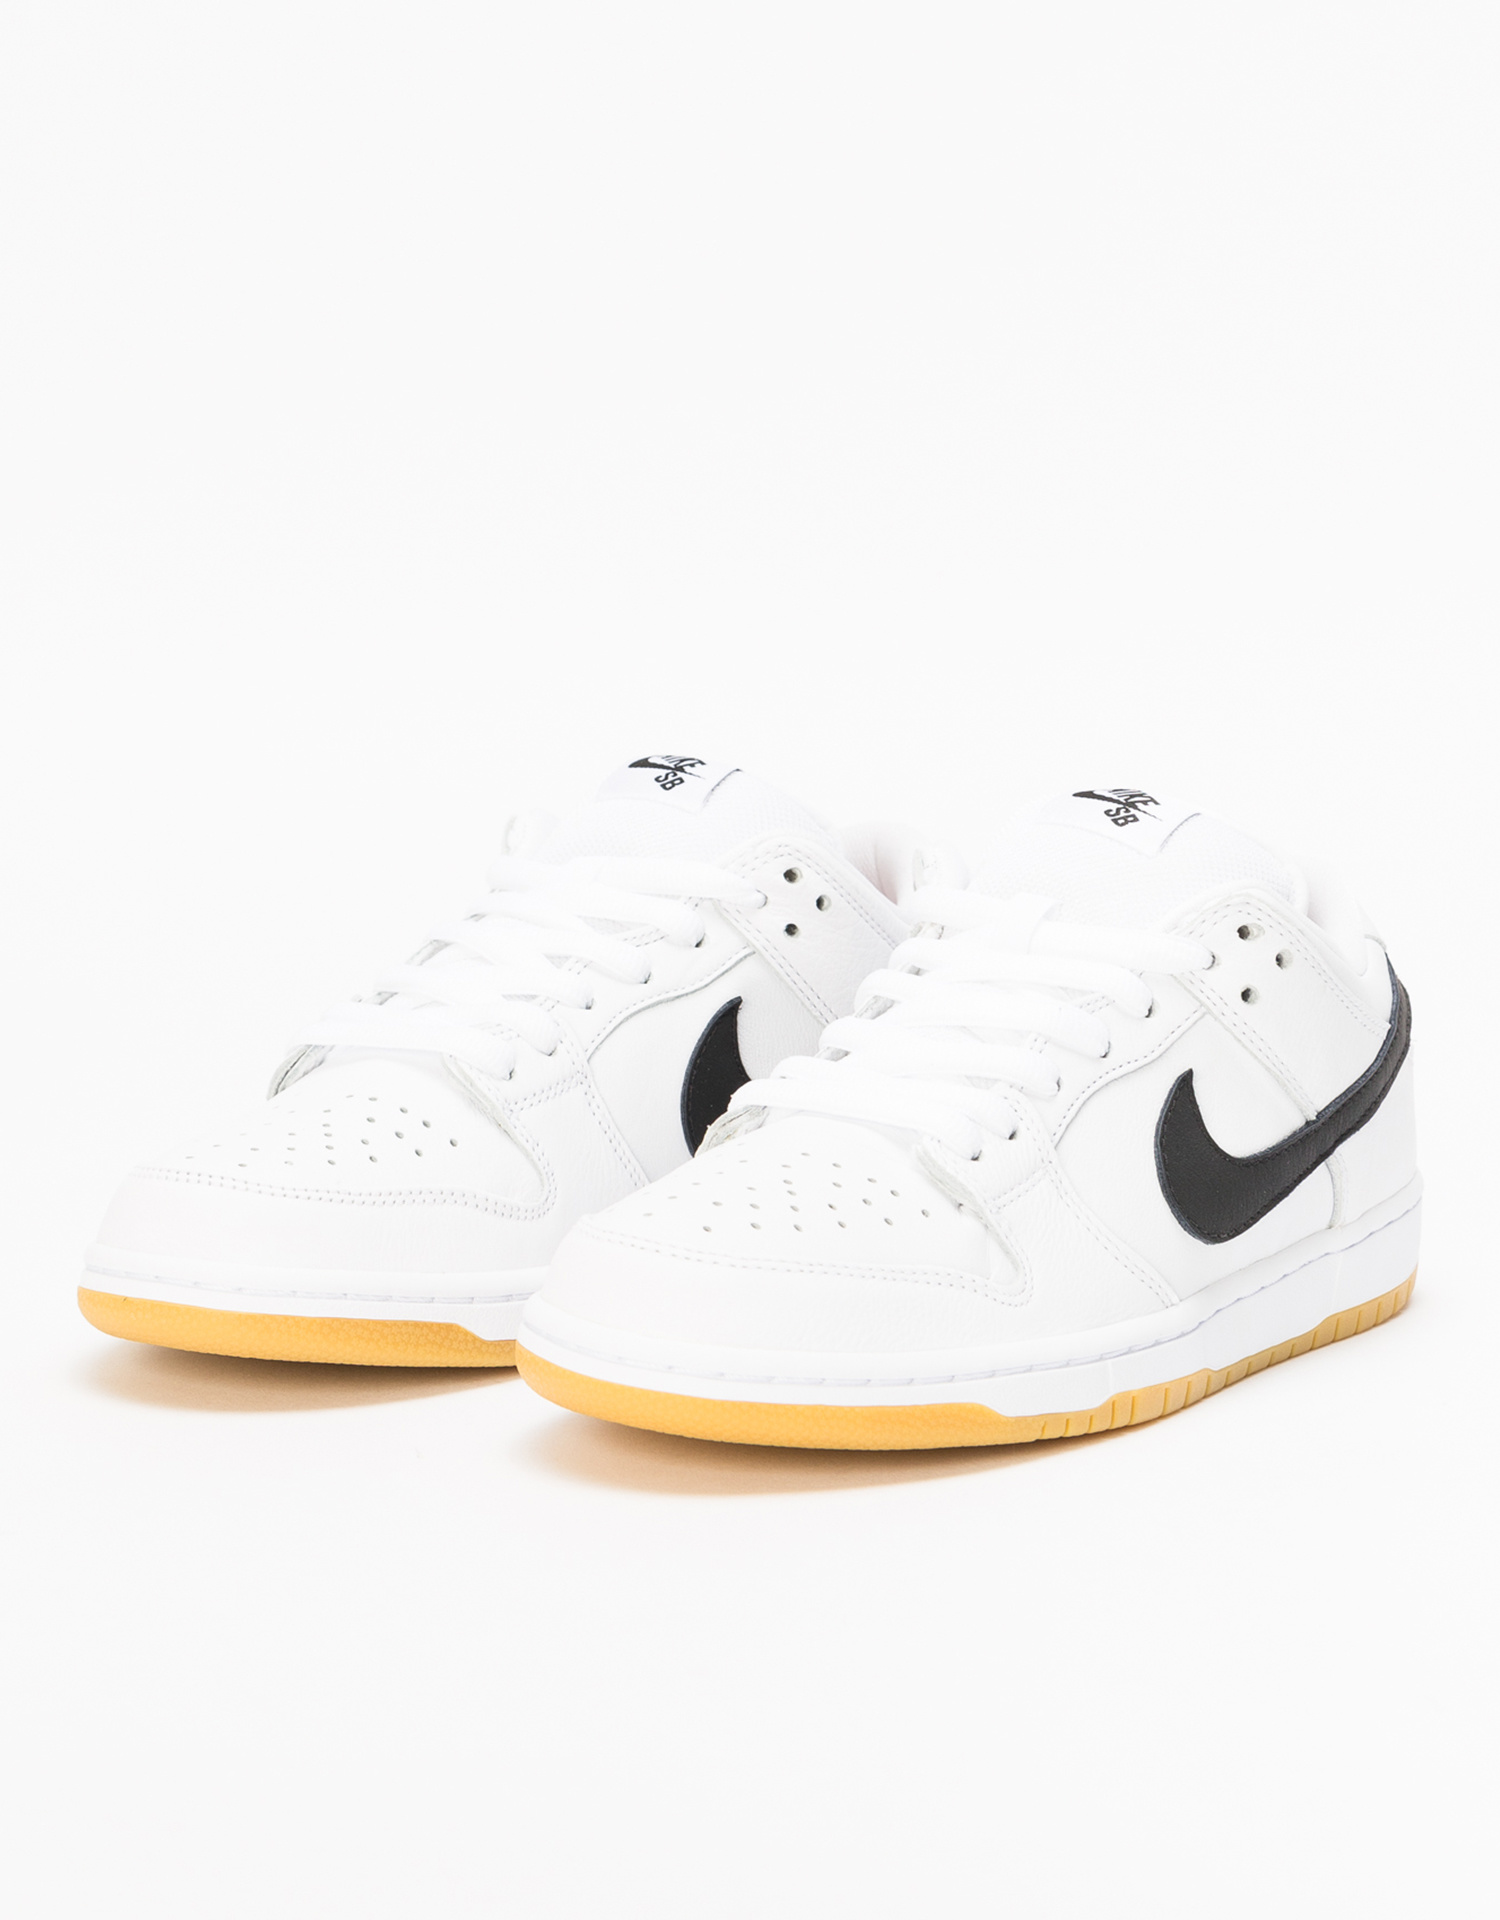 save off 2a6e6 0dc5e NIKE SB. NIKE SB DUNK LOW PRO ISO ORANGE LABEL ...